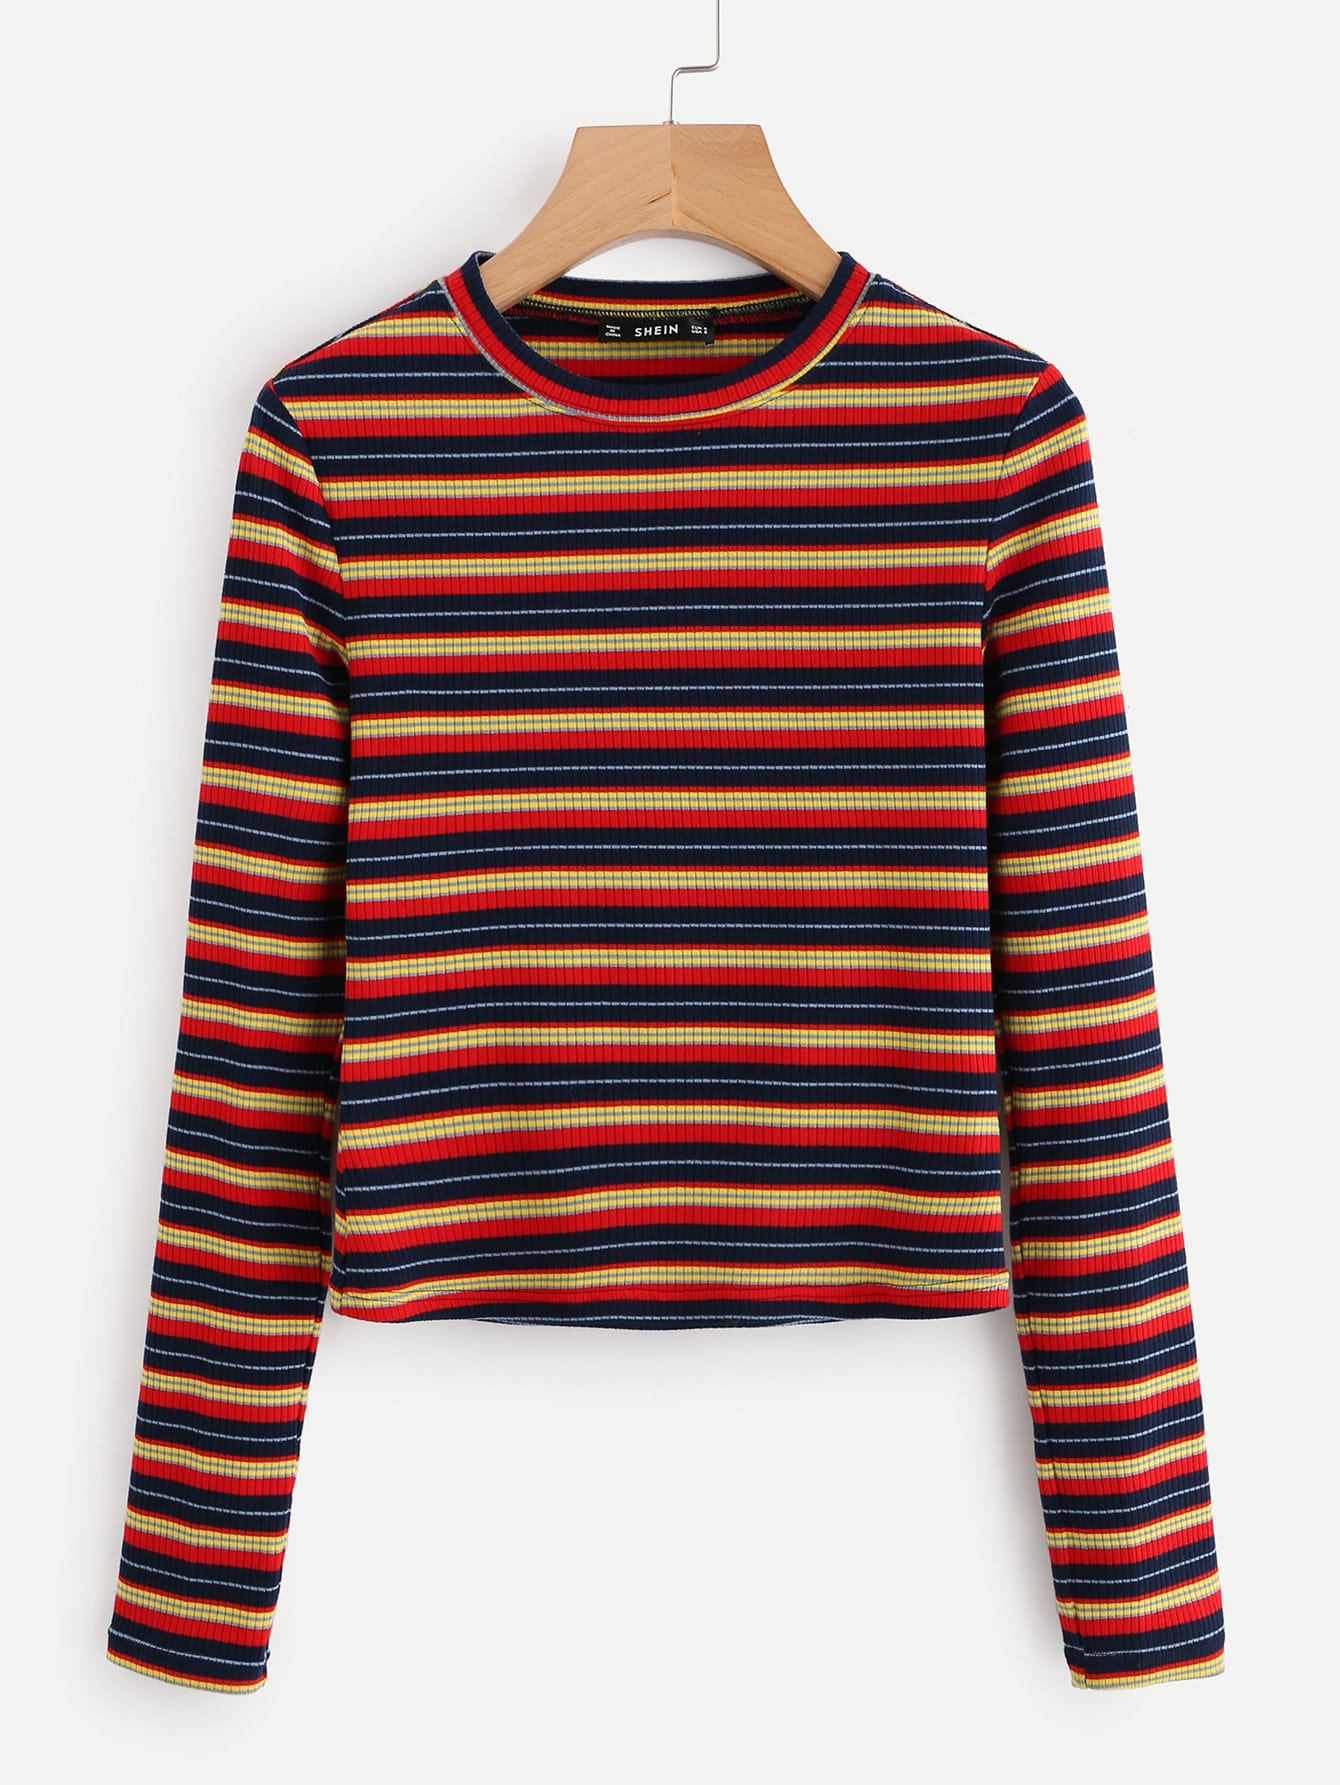 Colorful Striped Ribbed Tee tee171010707